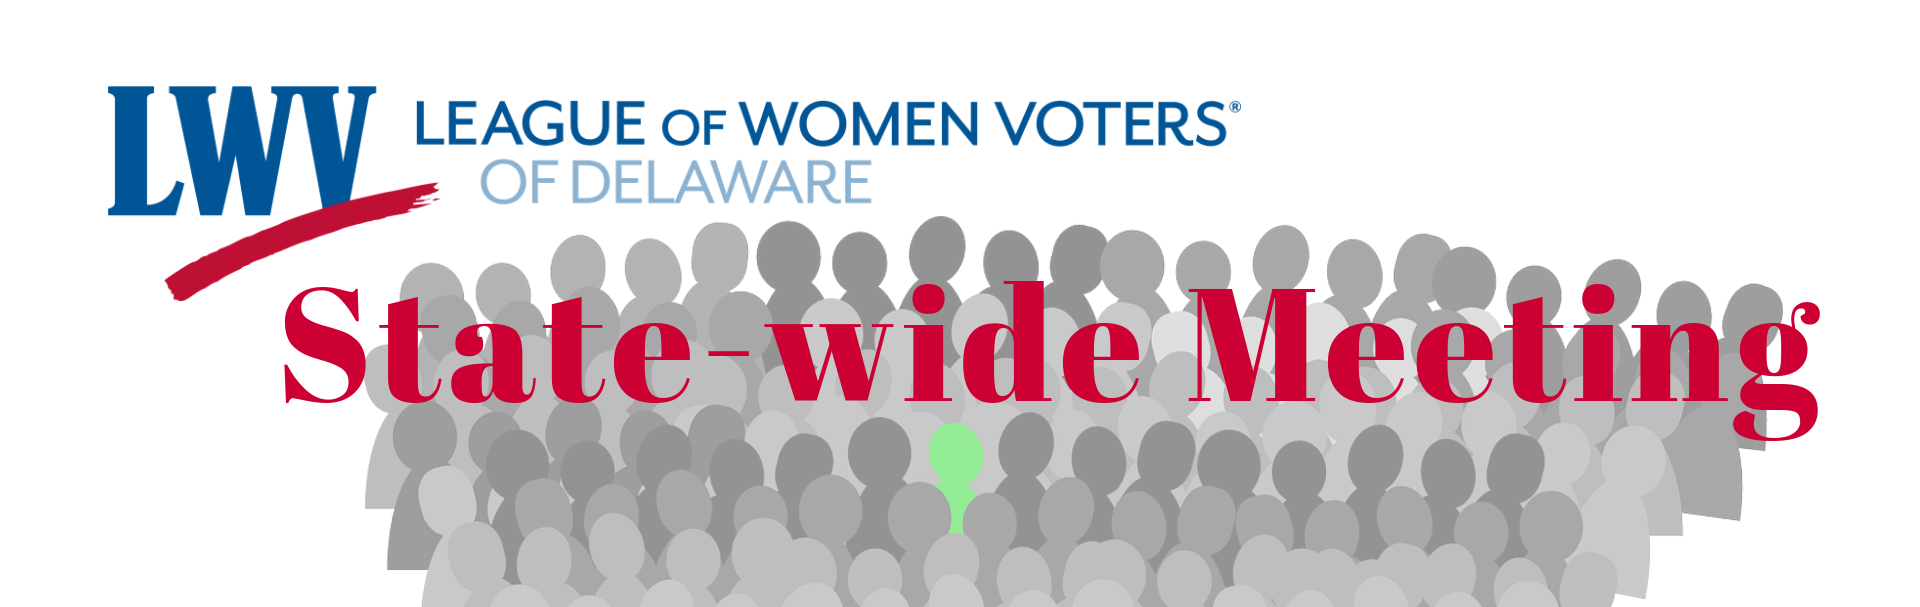 League of Women Voters of Delaware State-Wide Meeting